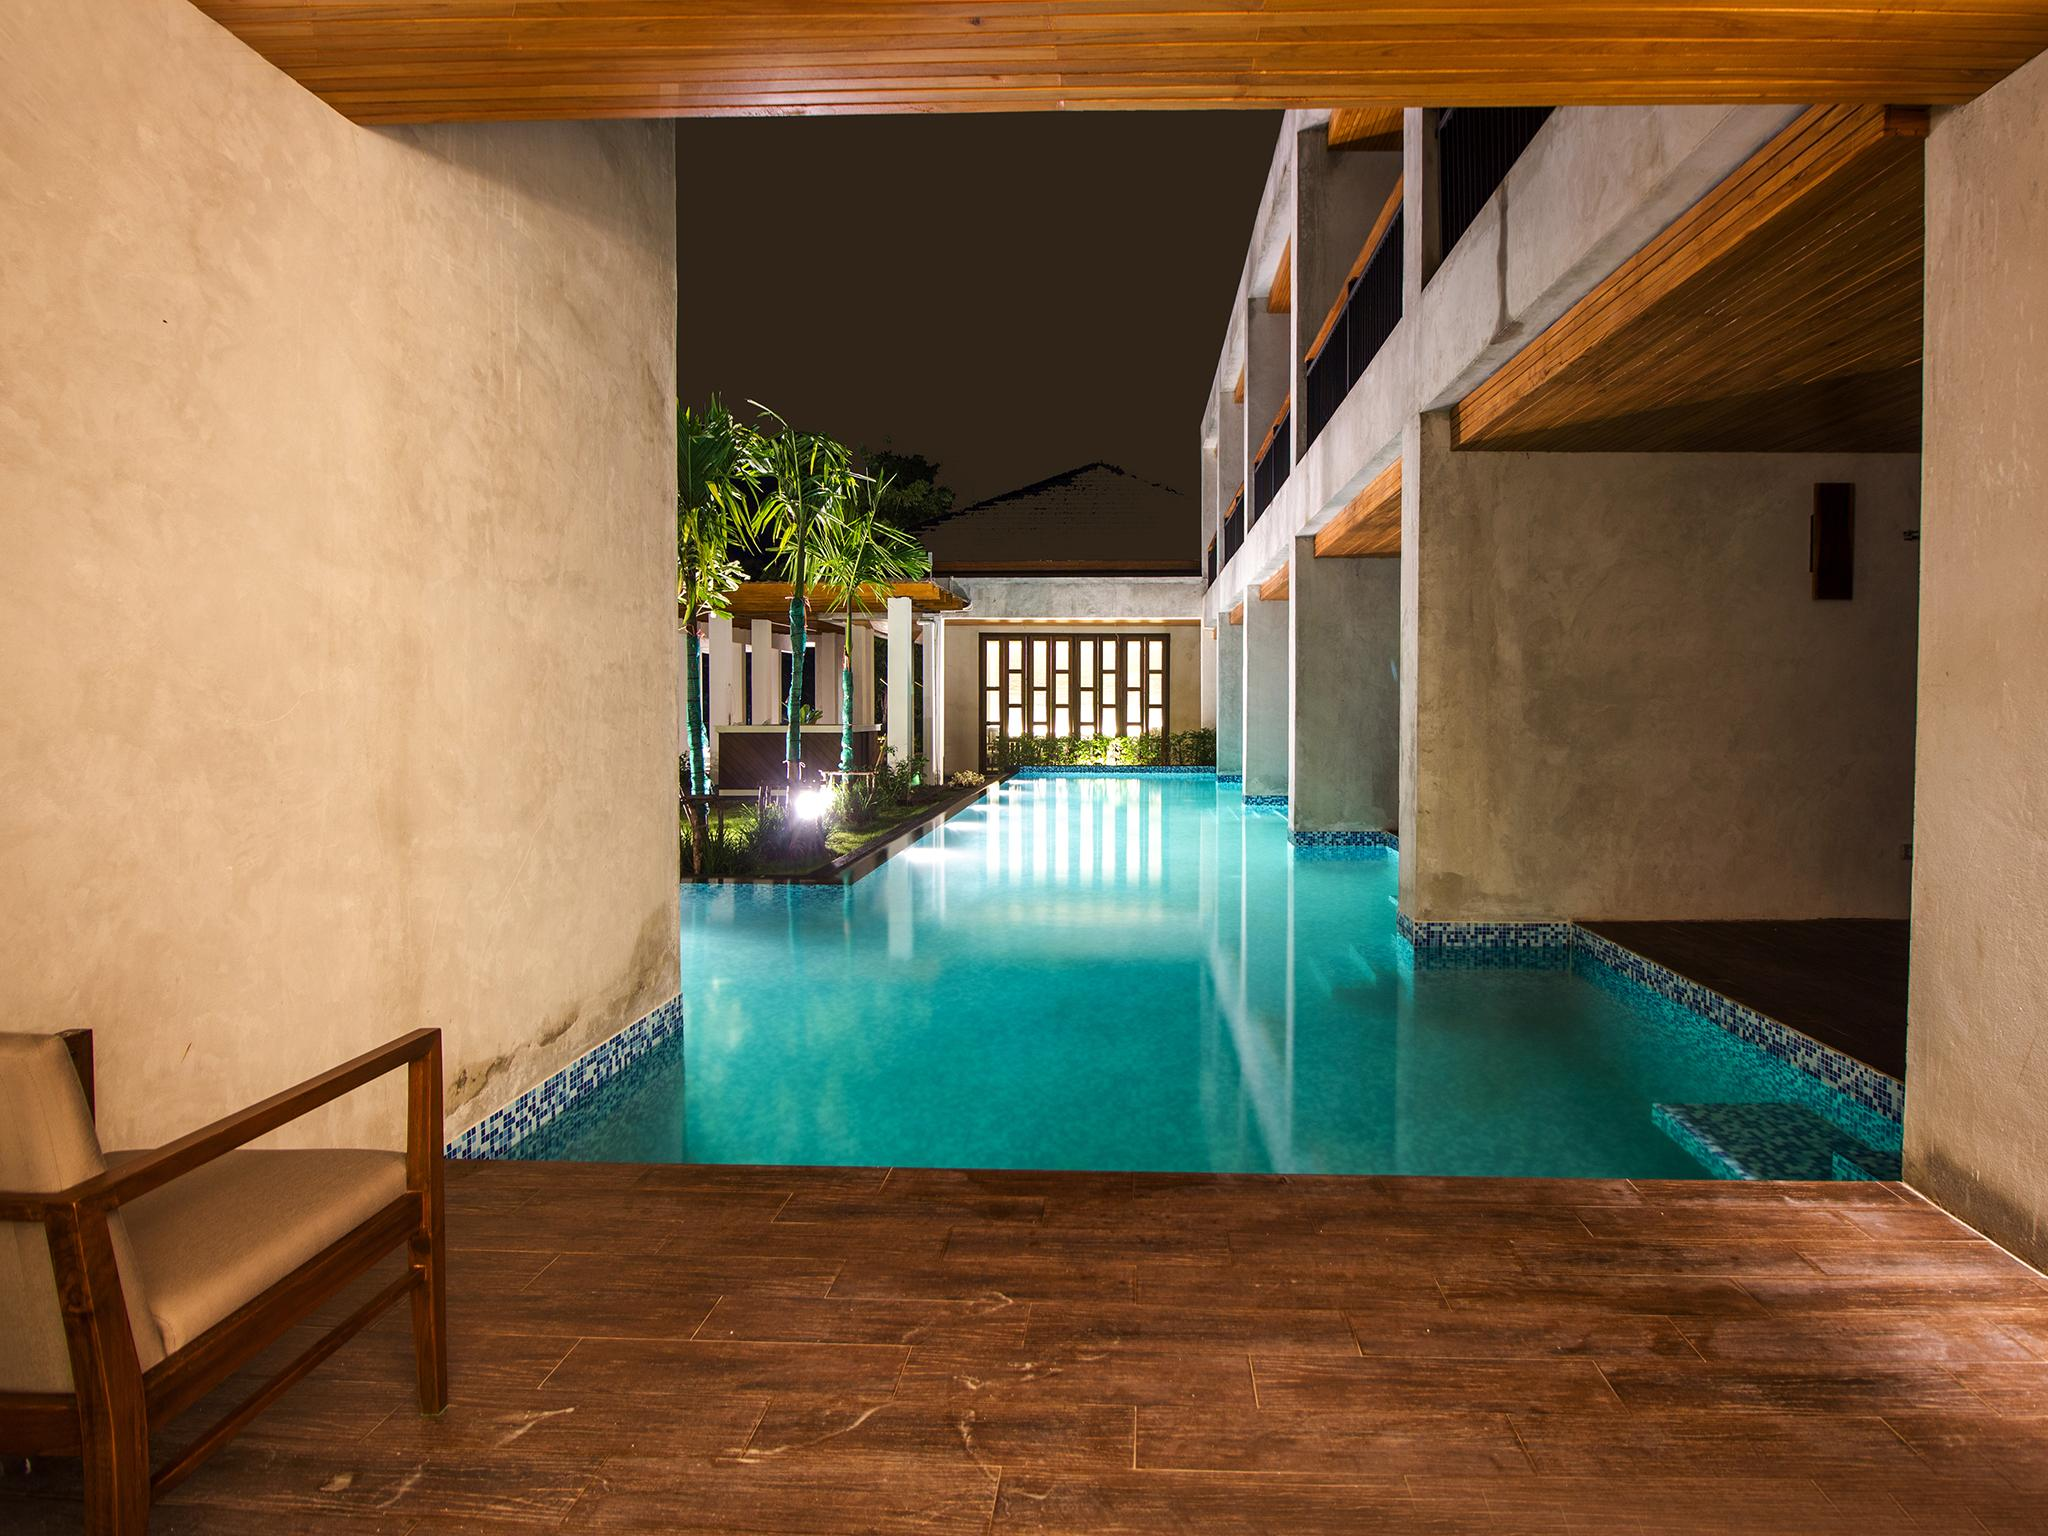 Luxus Premier Zimmer mit Poolzugang (Luxury Premier Room with Pool Access)